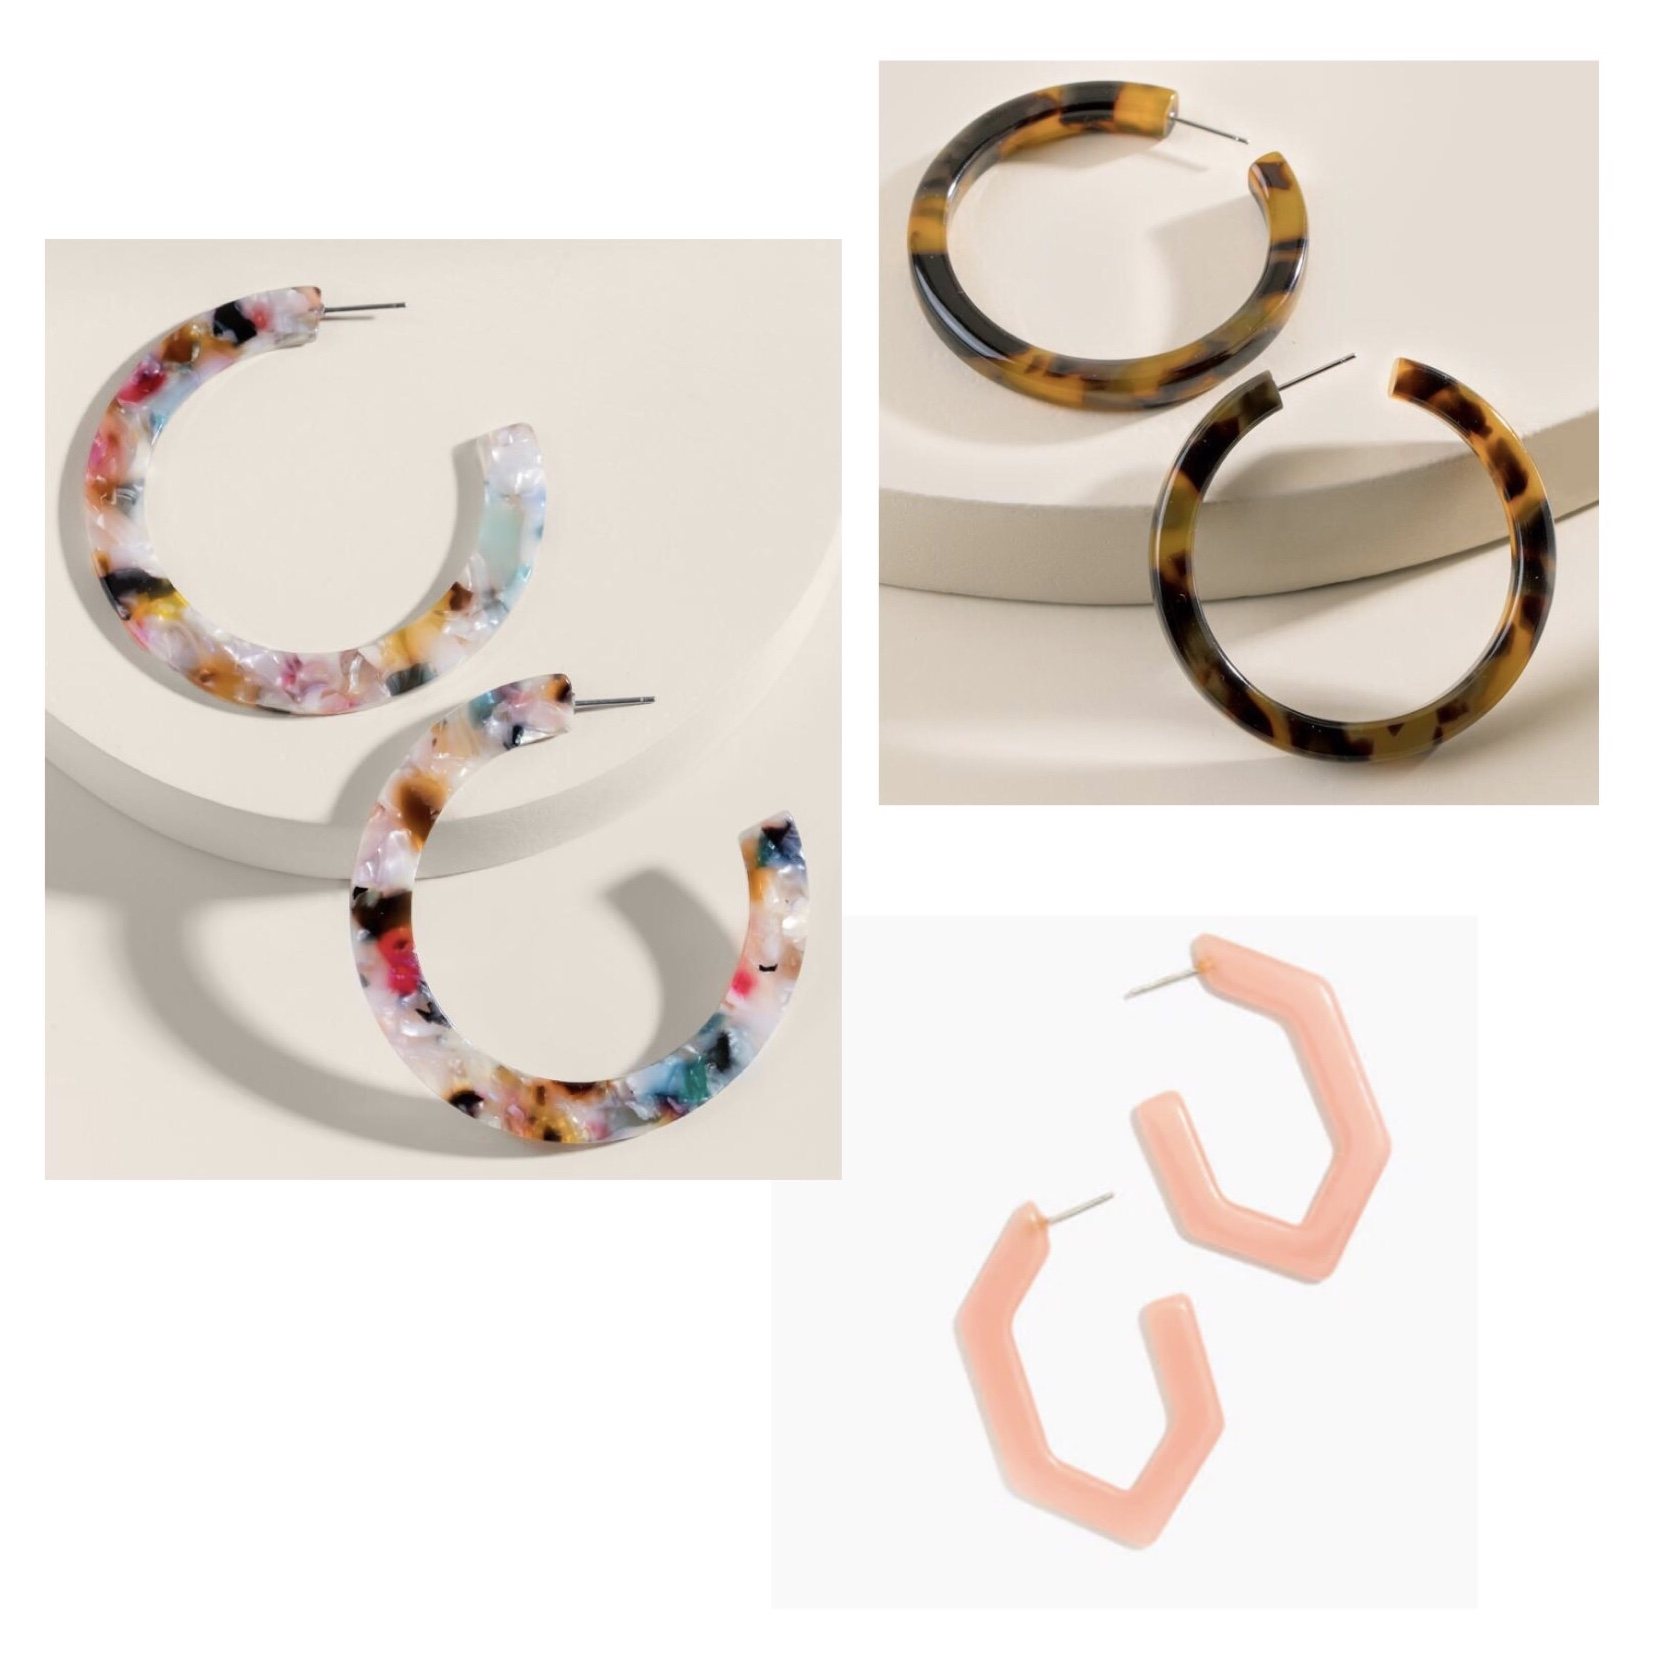 (Clockwise)  1.  Jasmine Flat Marbled Resin Hoops  - $20  2.  Charley Tortoise Hoops  - $20  3.  Madewell Oversized Geometric Hoops  - $26